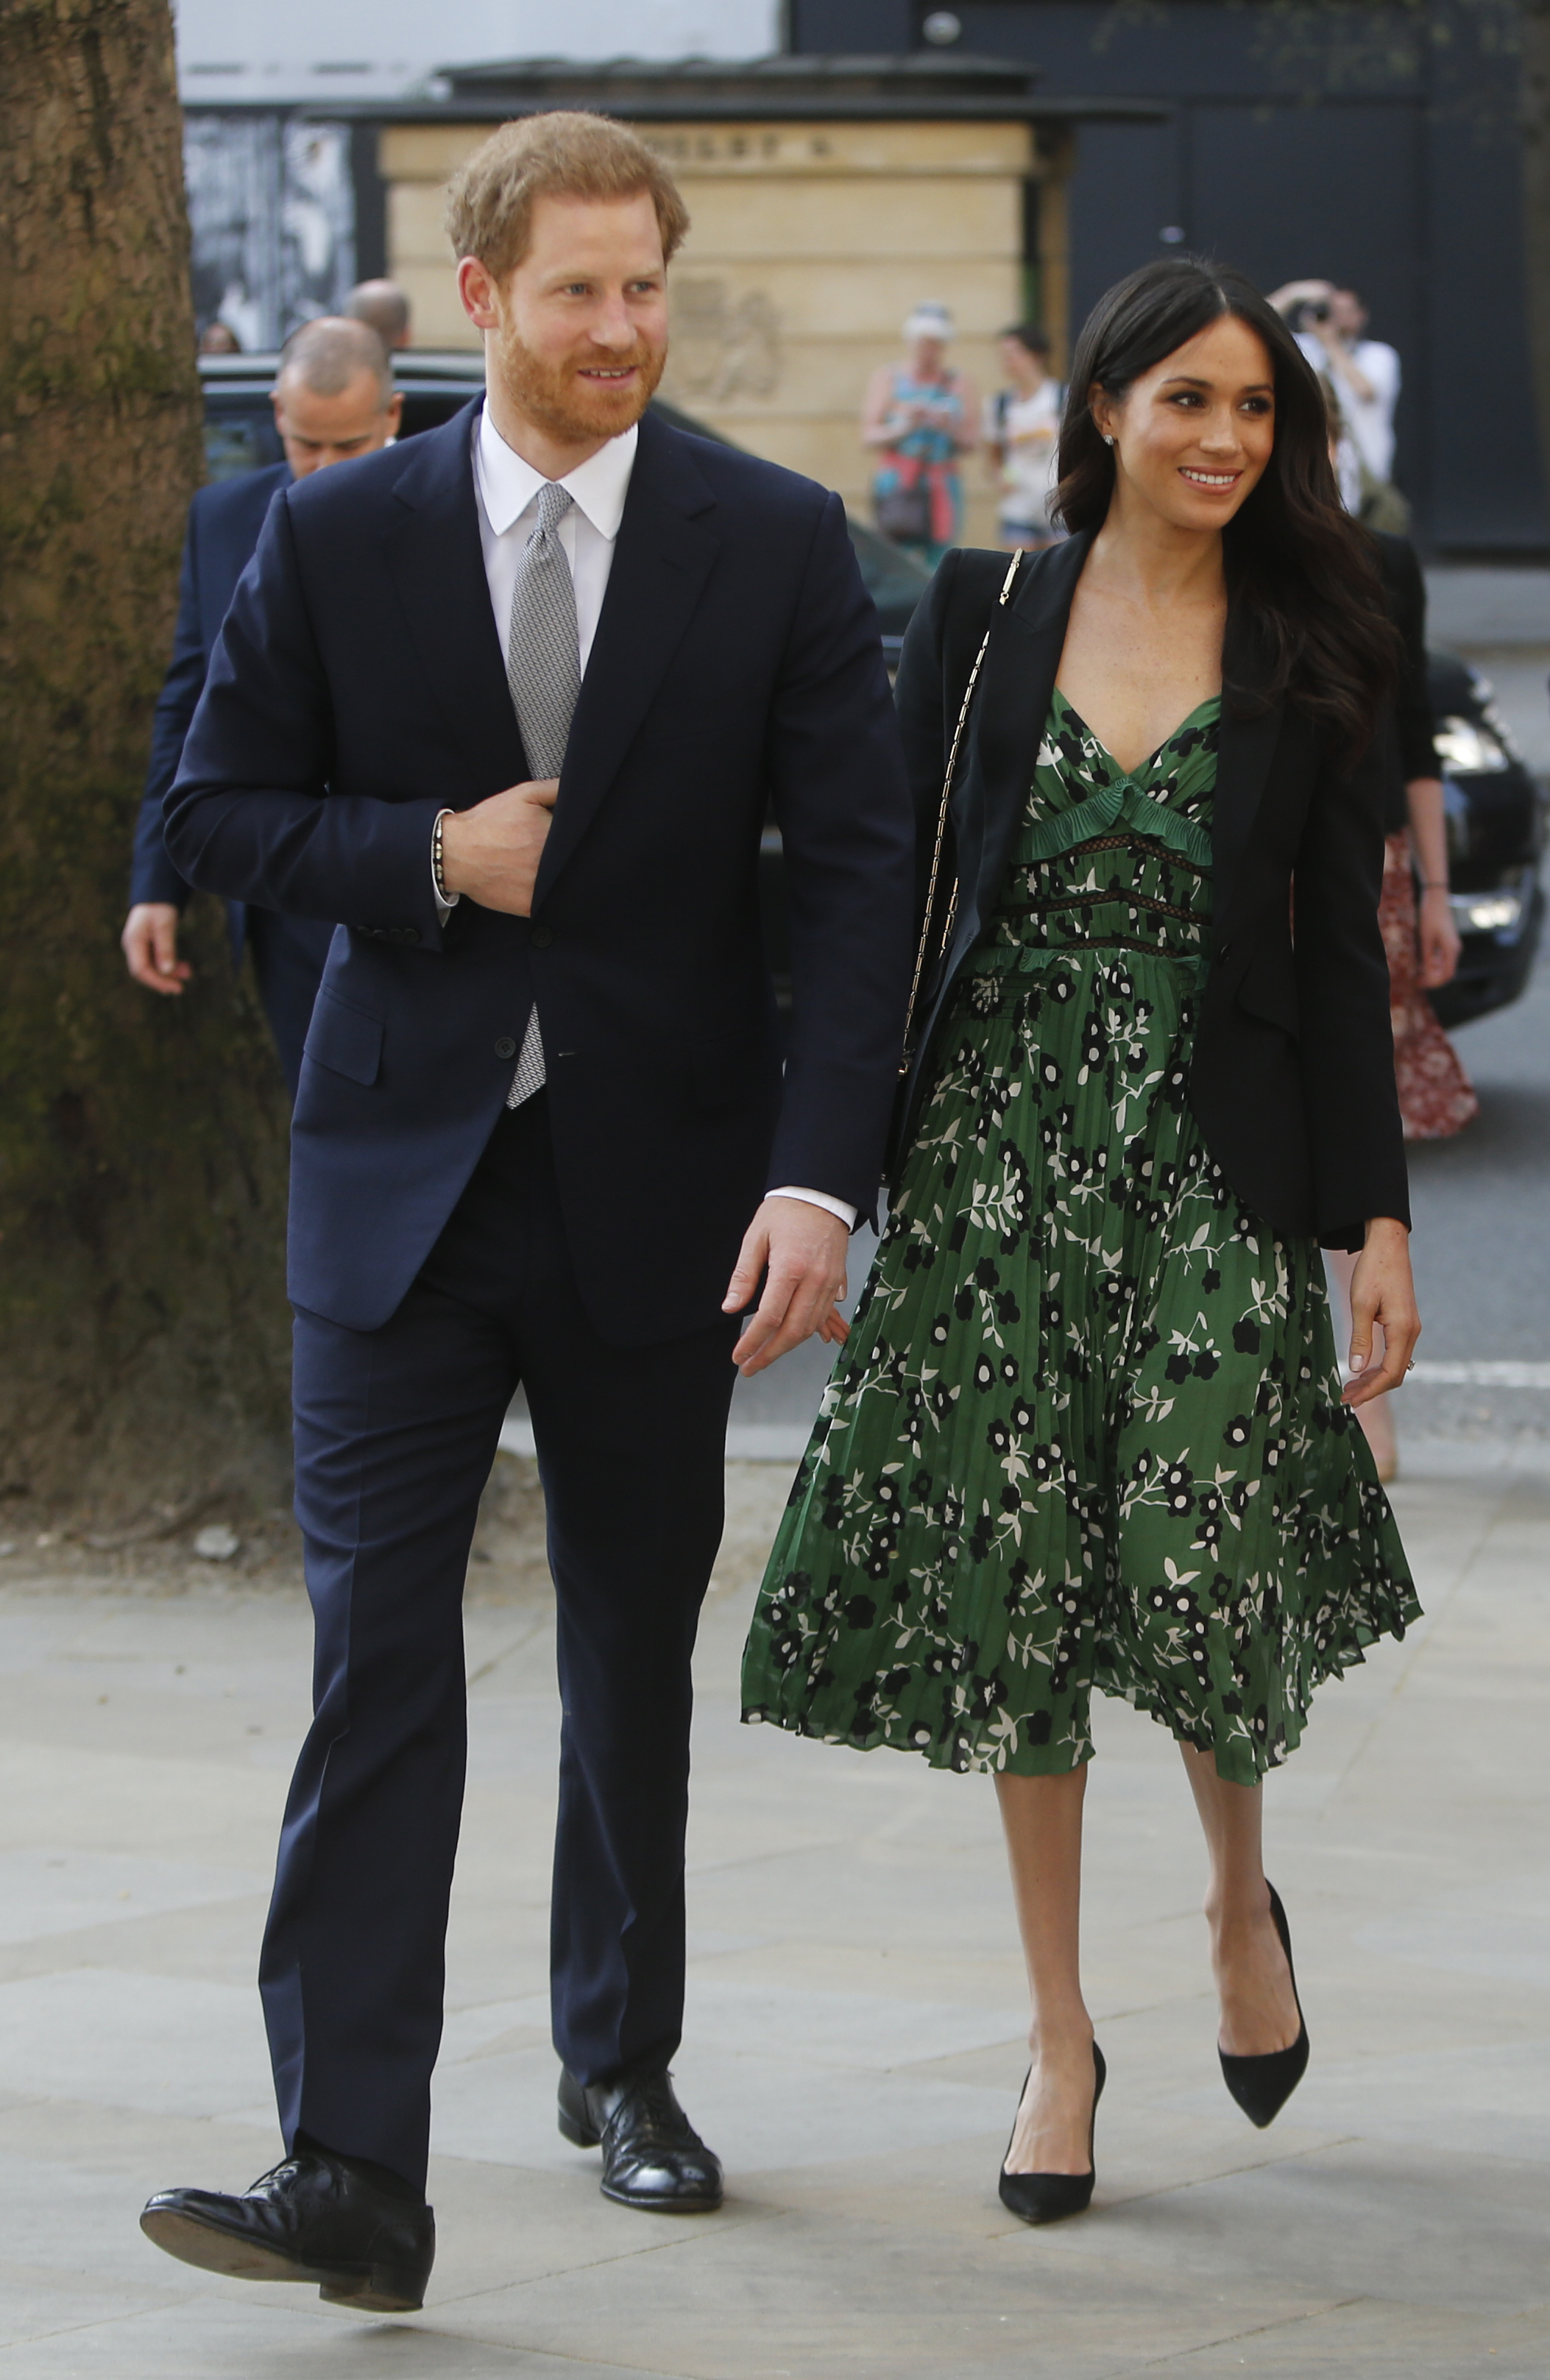 Who-Wore-It-Better-Meghan-Markle-and-Natalie-Morales-Stun-In-Green-Self-Portrait-Dress